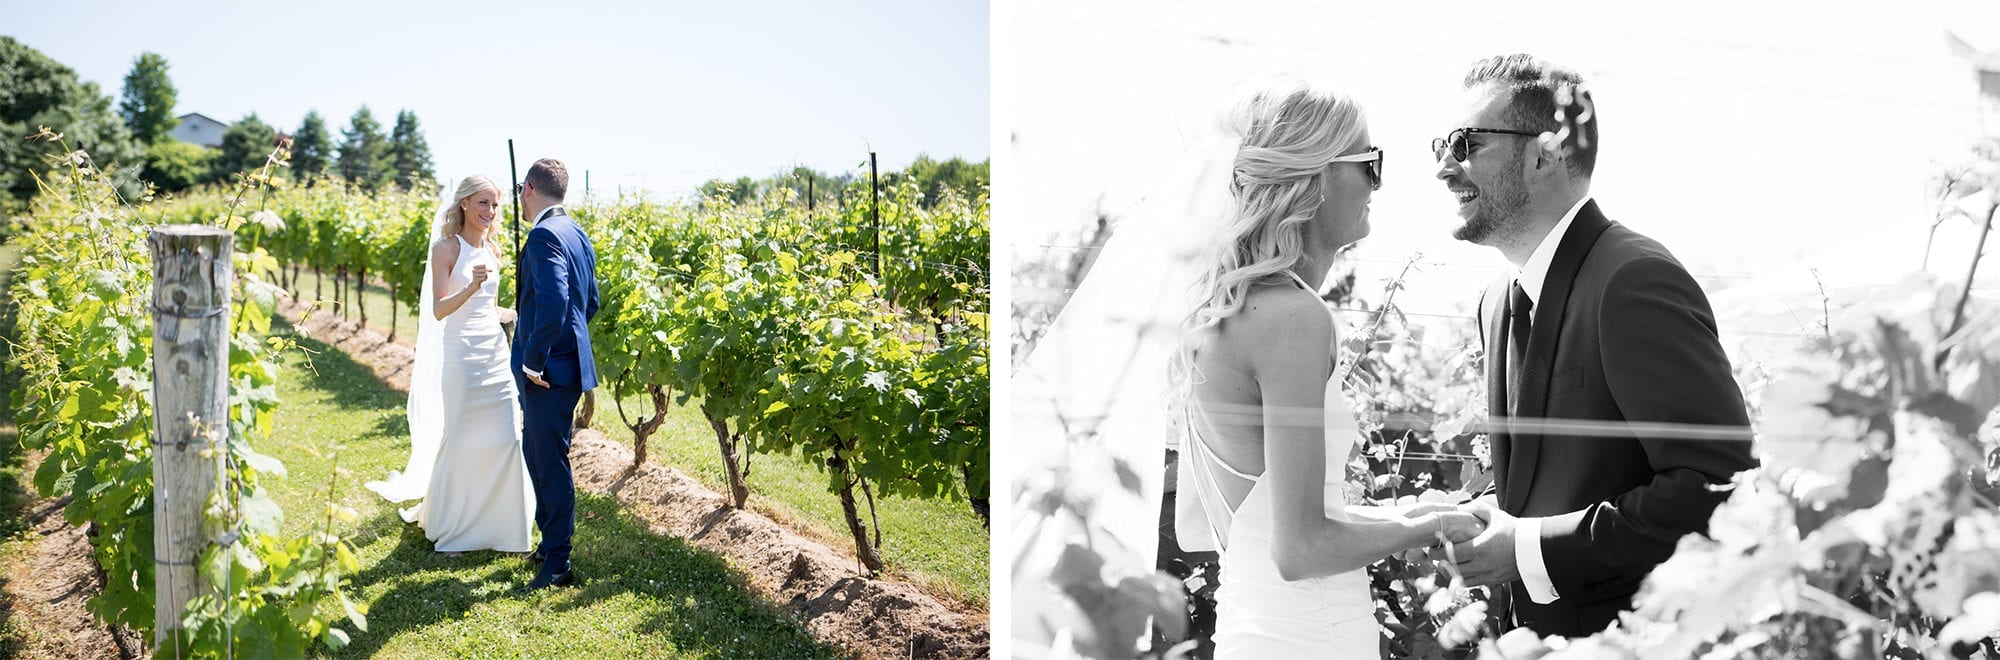 First Look Reveal Legends Winery Wedding Zsuzsi Pal Photography